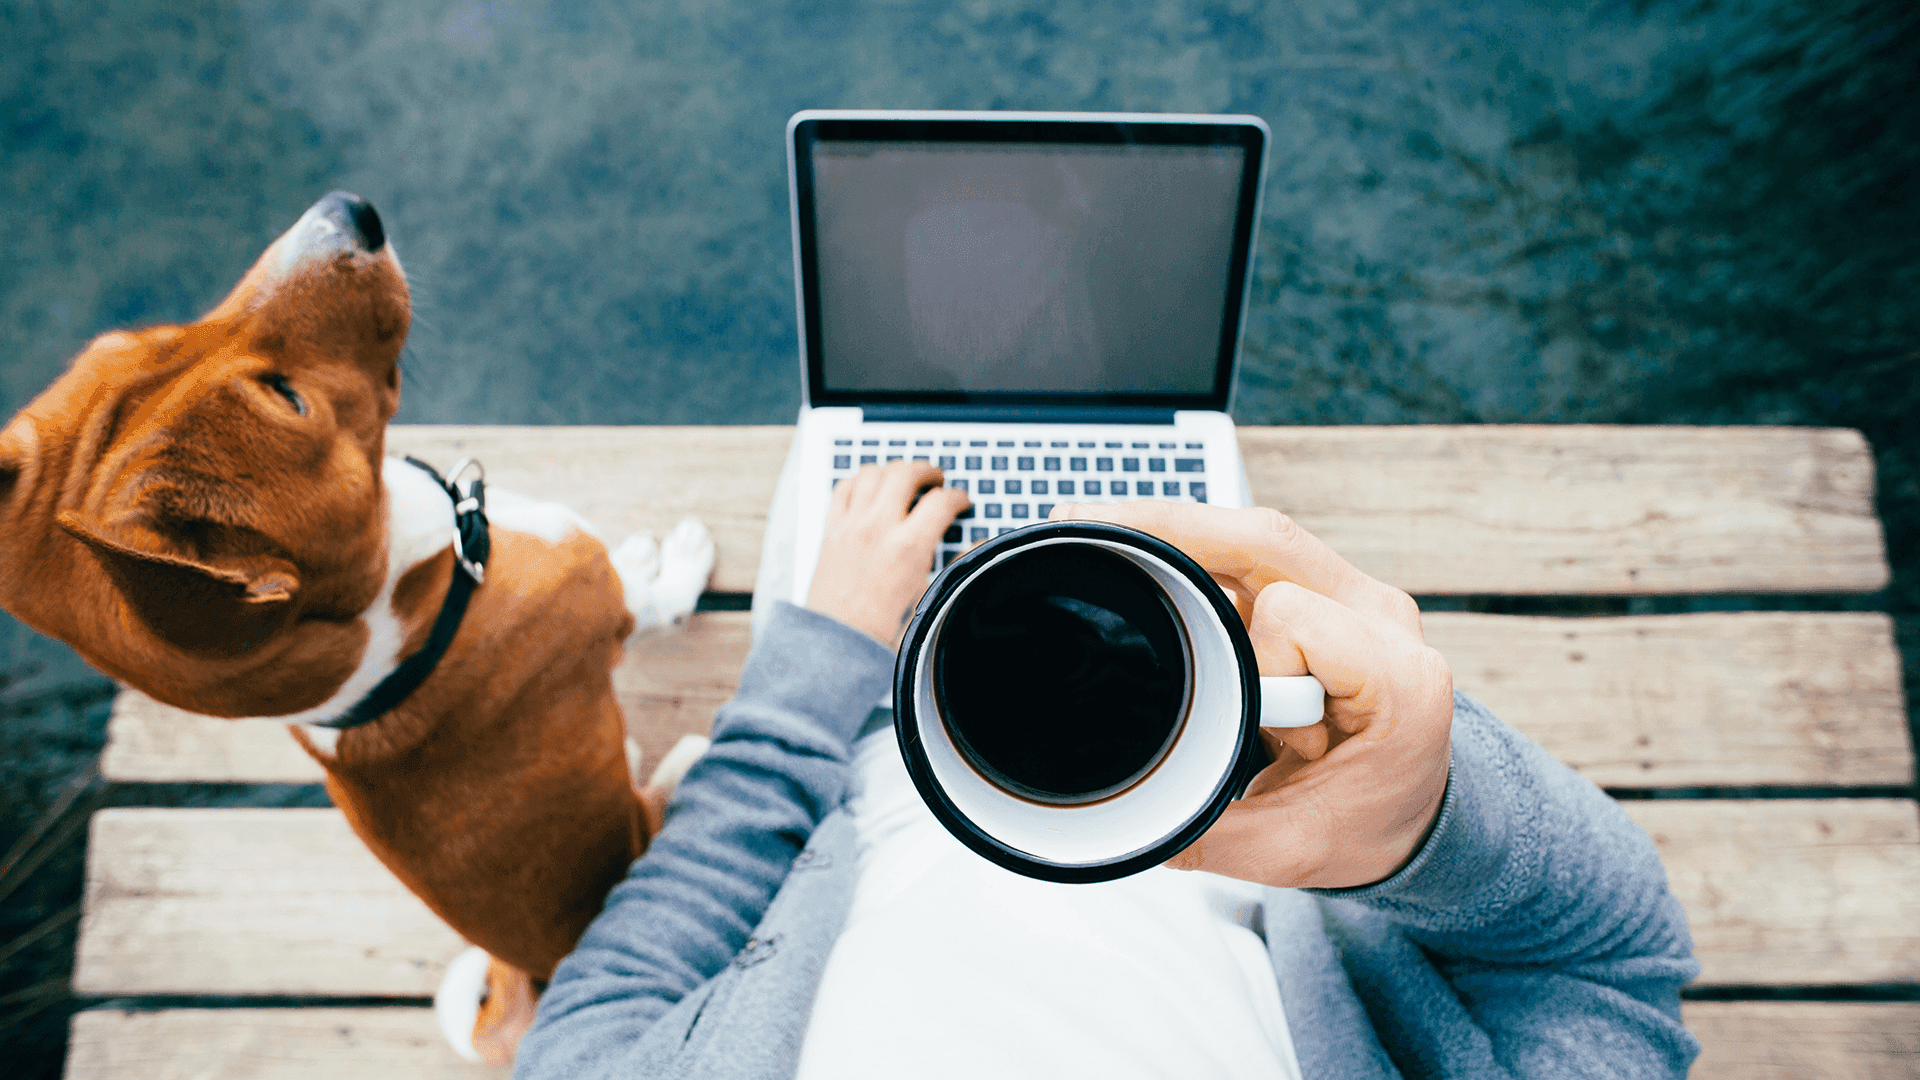 """Work over a cup of coffee - article """"Ordering a video remotely"""""""